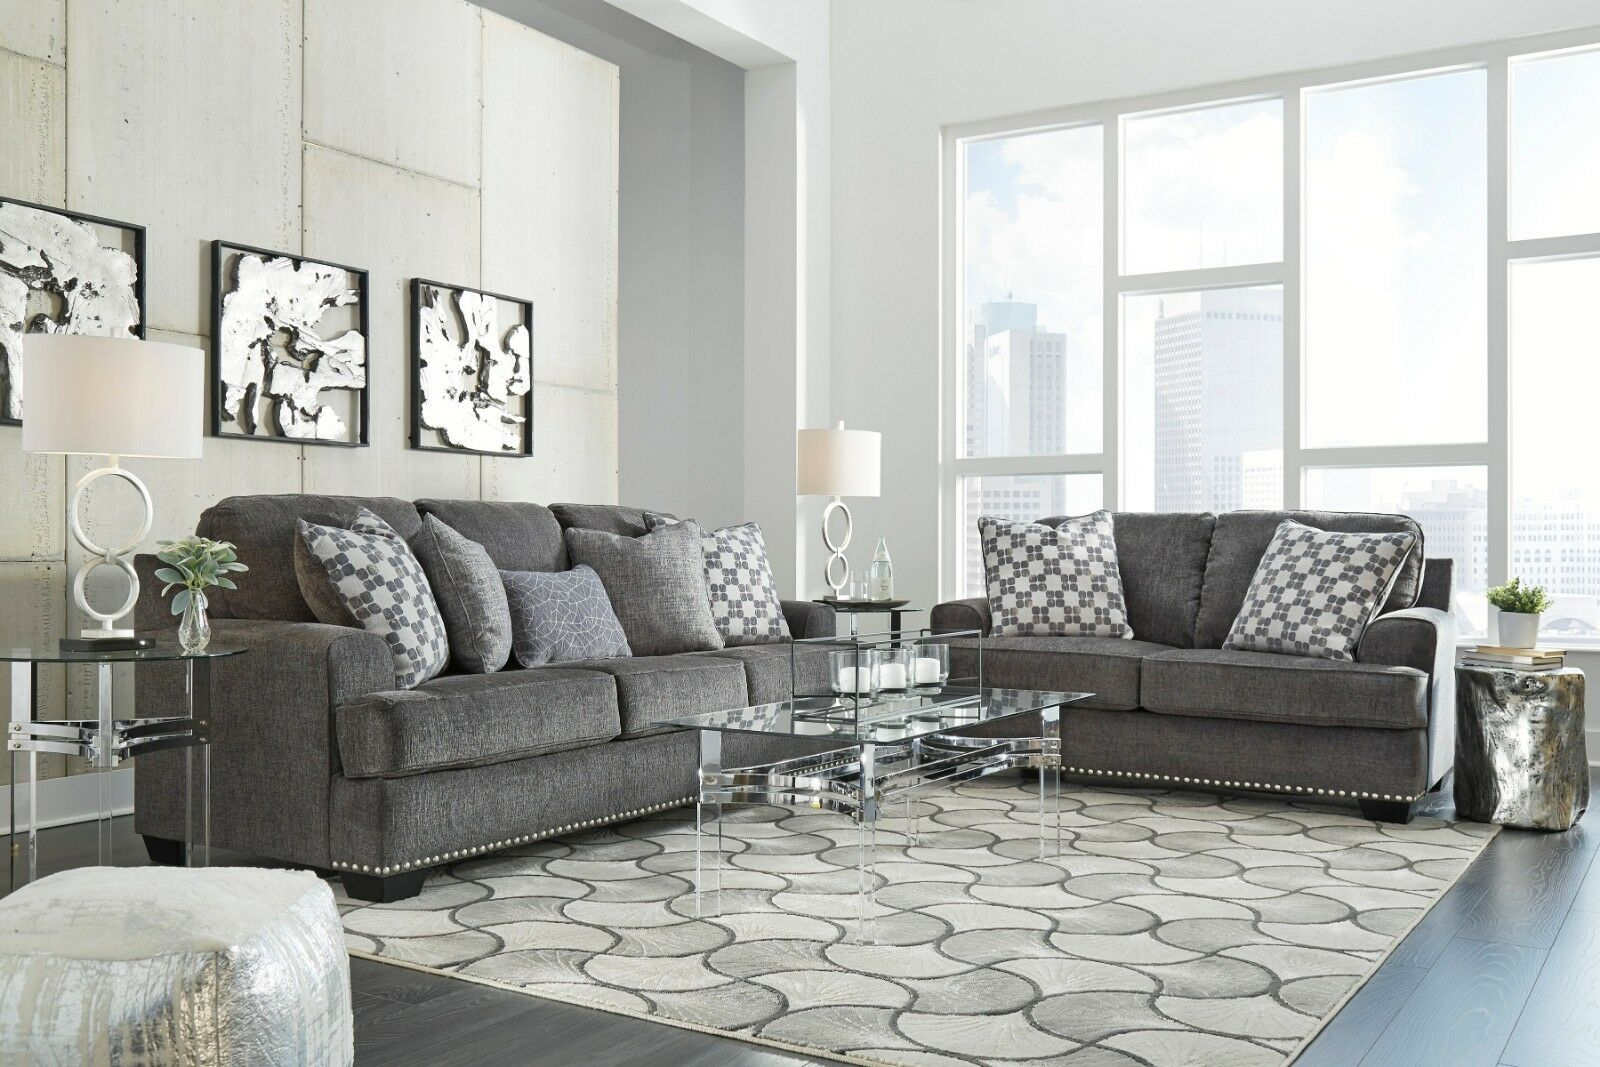 Sofa For Living Room Online Ashley Furniture Locklin Sofa And Loveseat Living Room